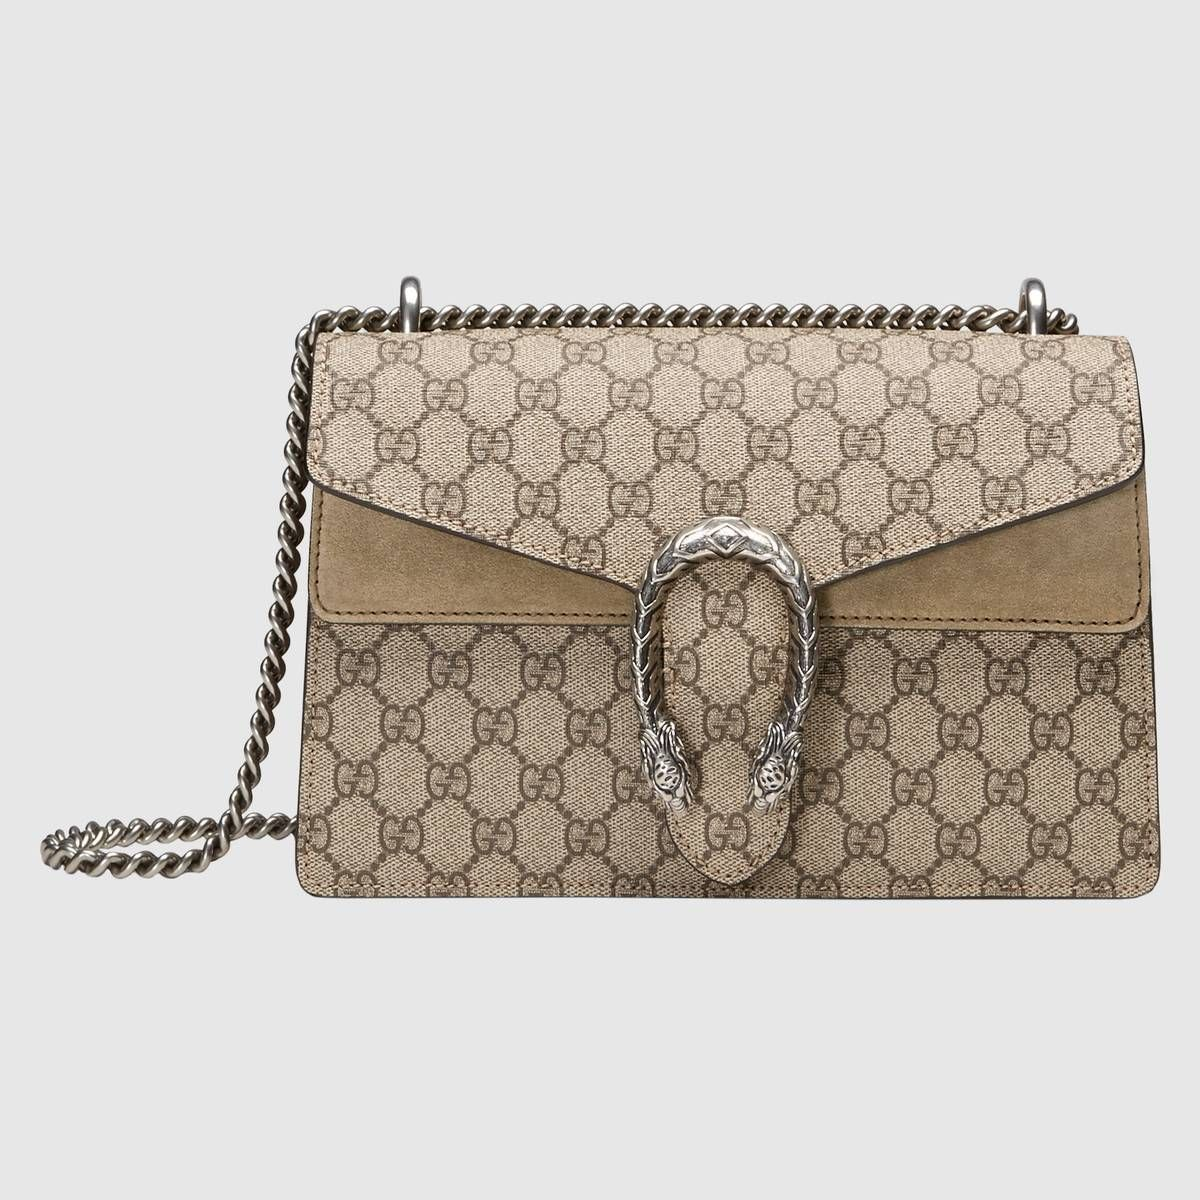 225f6523a36 Shop the Dionysus small GG shoulder bag by Gucci. A structured GG Supreme  canvas bag with our textured tiger head closure-a unique detail referencing  the ...